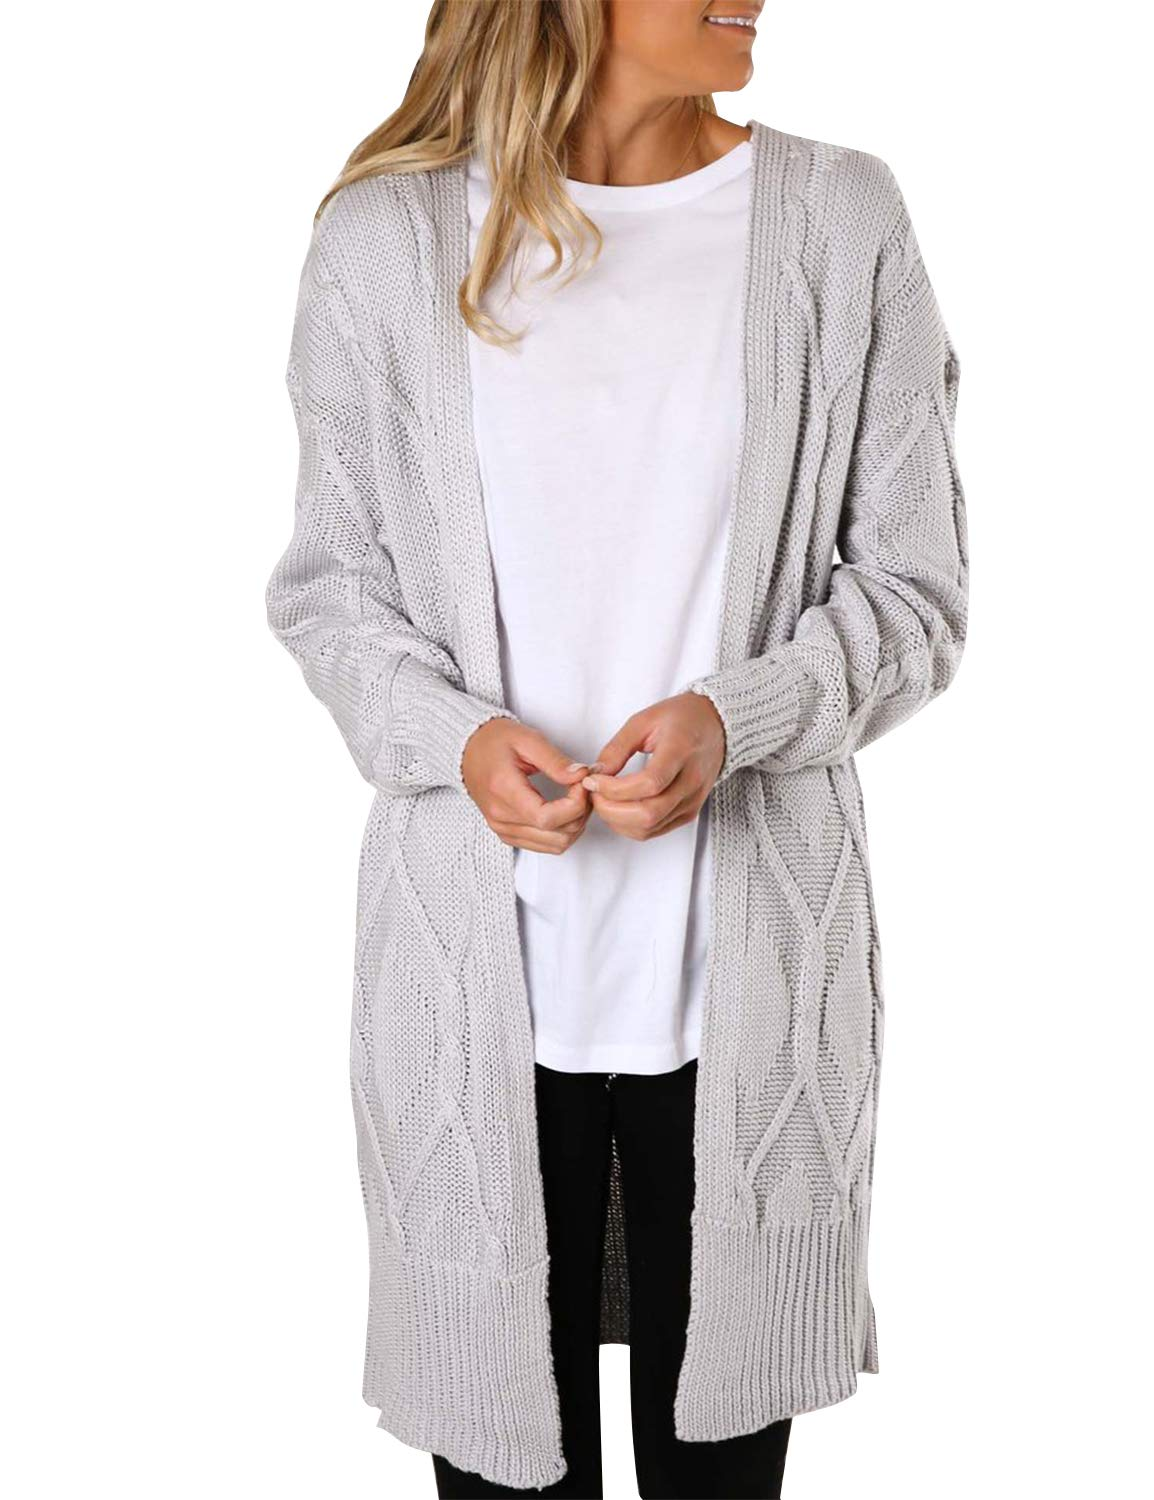 BMJL Women's Long Sleeved Cardigan Longline Sweater Warm with Pockets Geometric Texture Grey